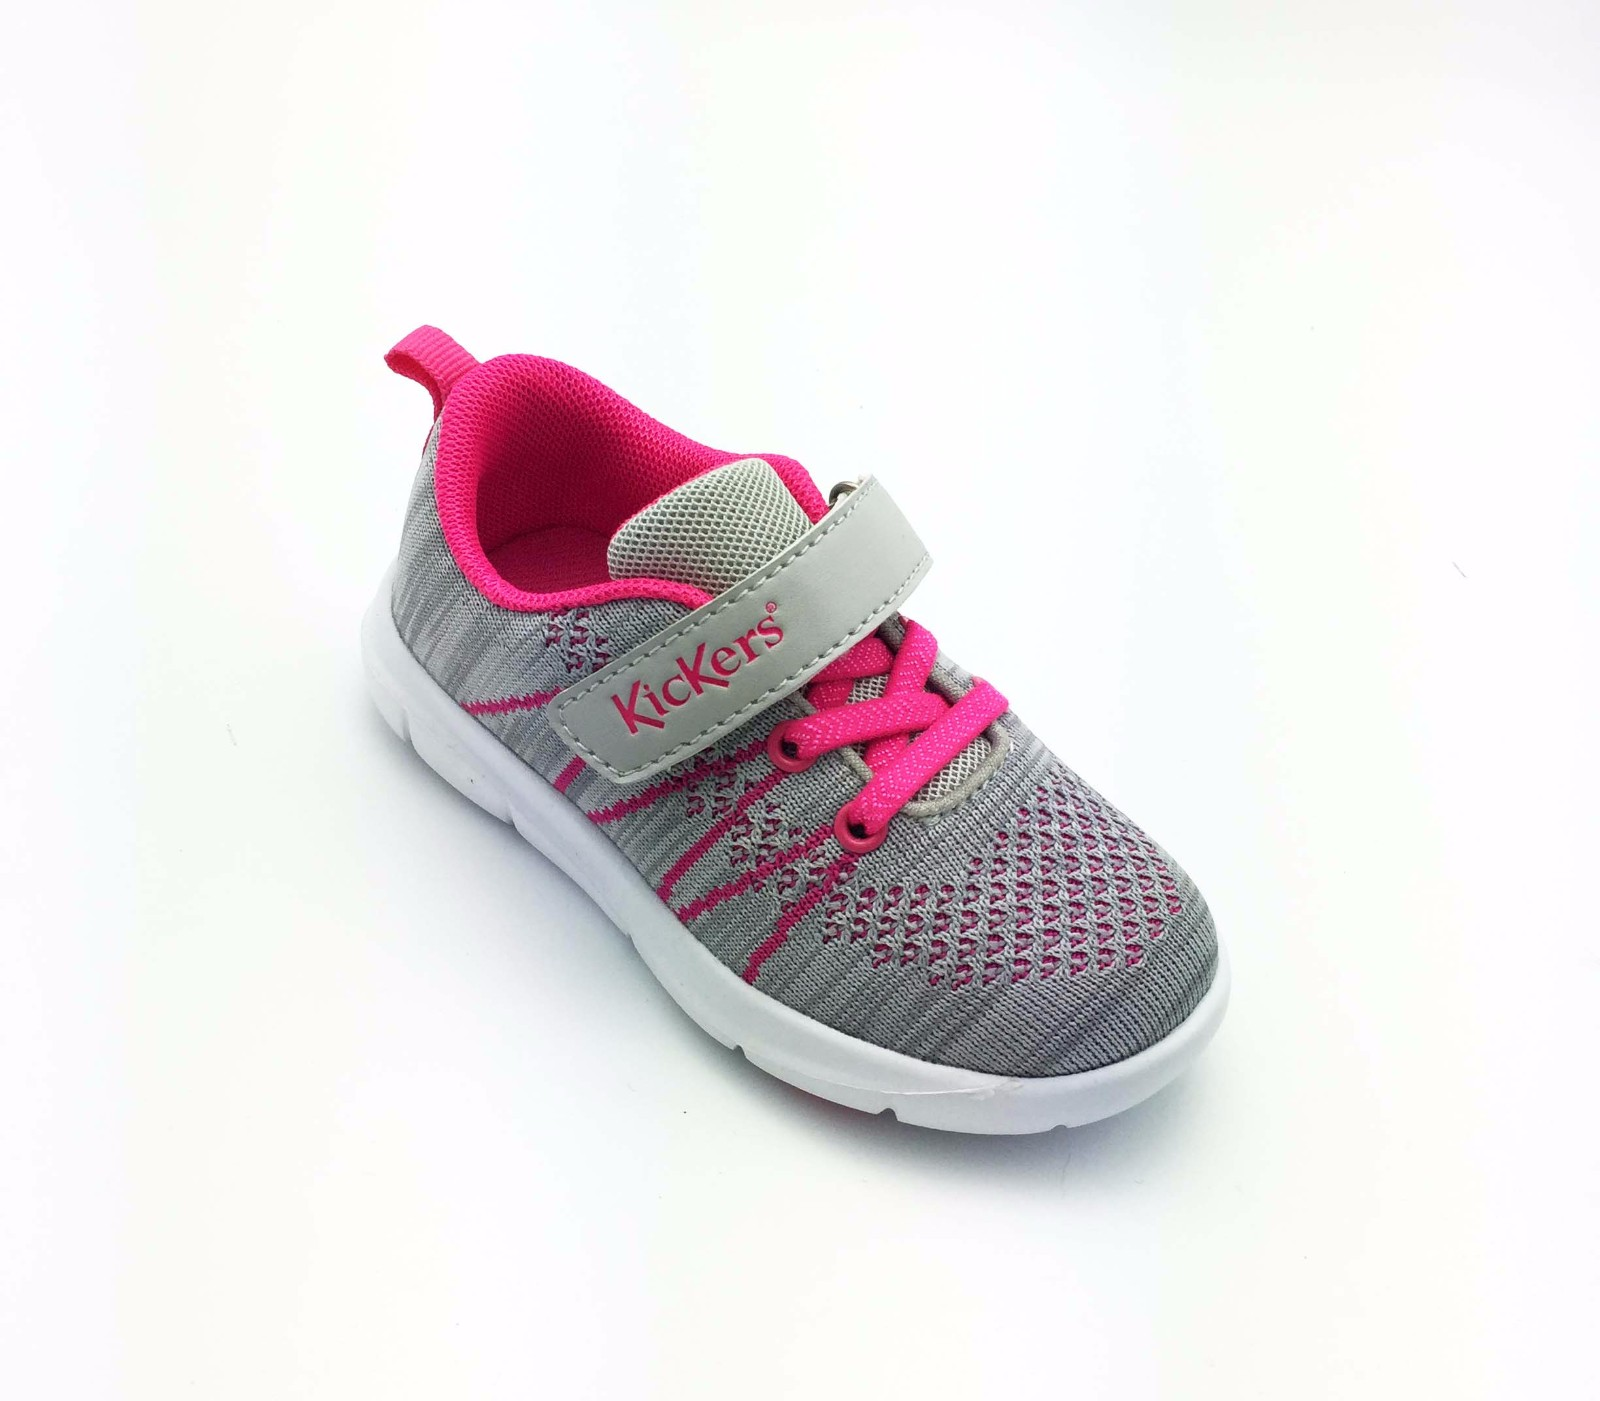 High quality Autumn Breathable Flyknit Kids Fashion Sneakers Child Breathable Shoes Quotes,China Autumn Breathable Flyknit Kids Fashion Sneakers Child Breathable Shoes Factory,Autumn Breathable Flyknit Kids Fashion Sneakers Child Breathable Shoes Purchasing